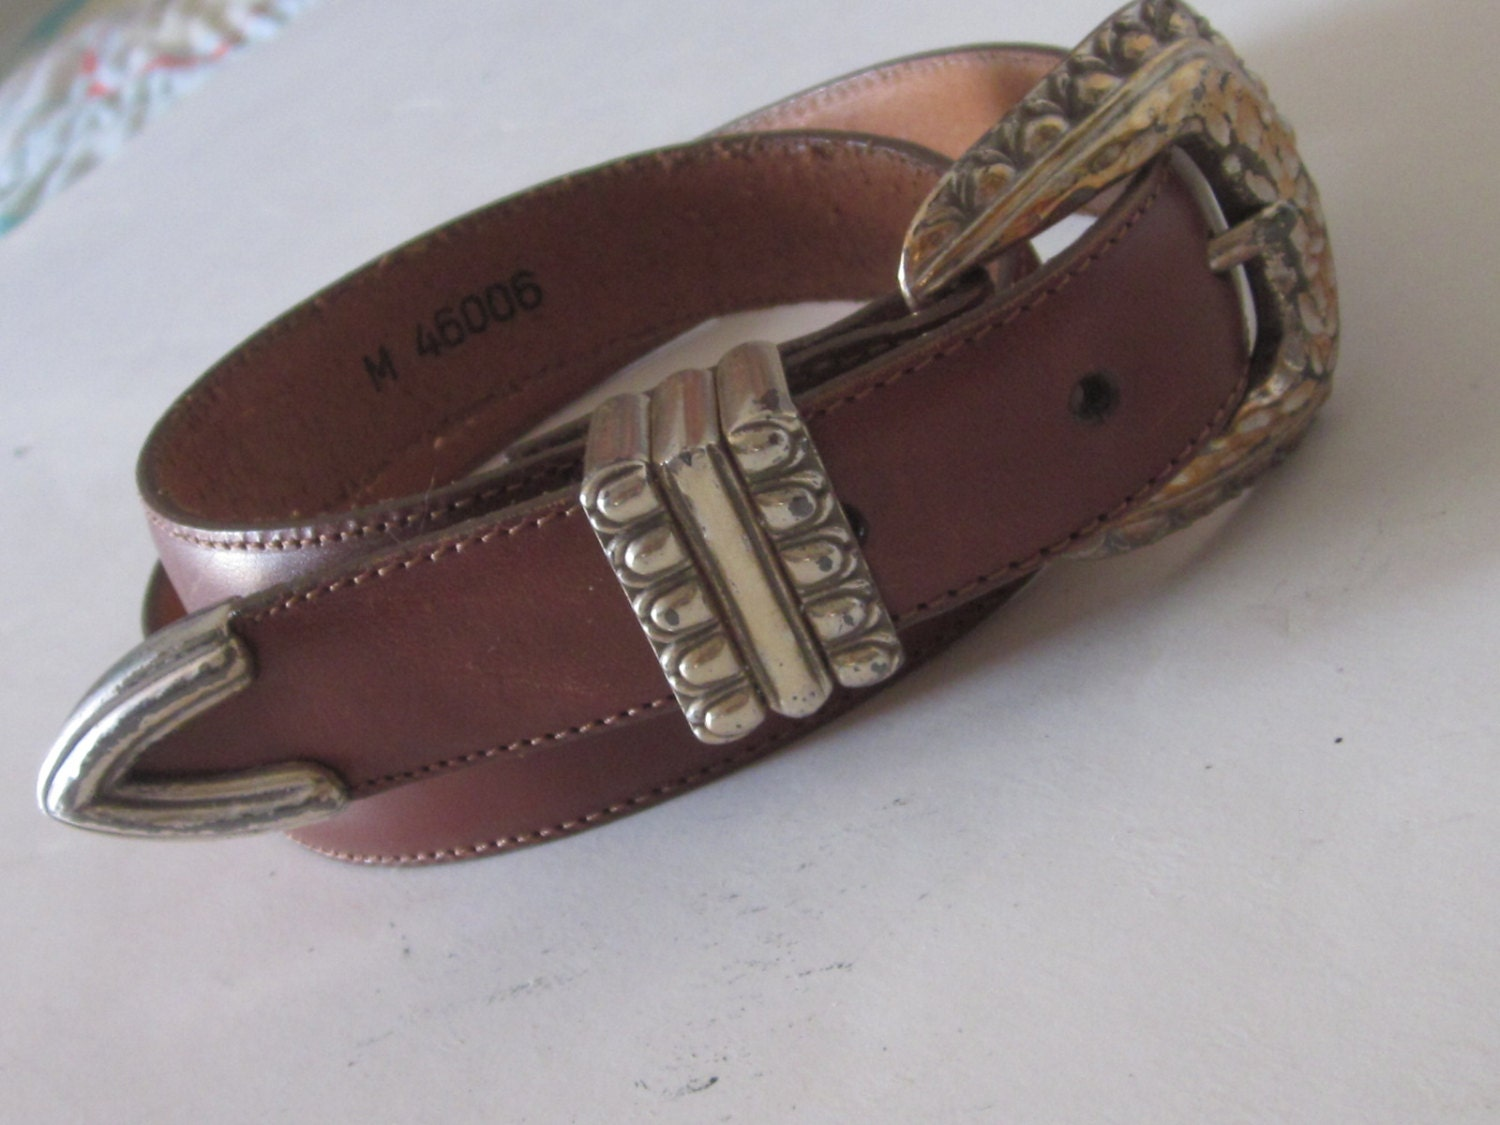 brighton leather belt s accessory silver buckle tip